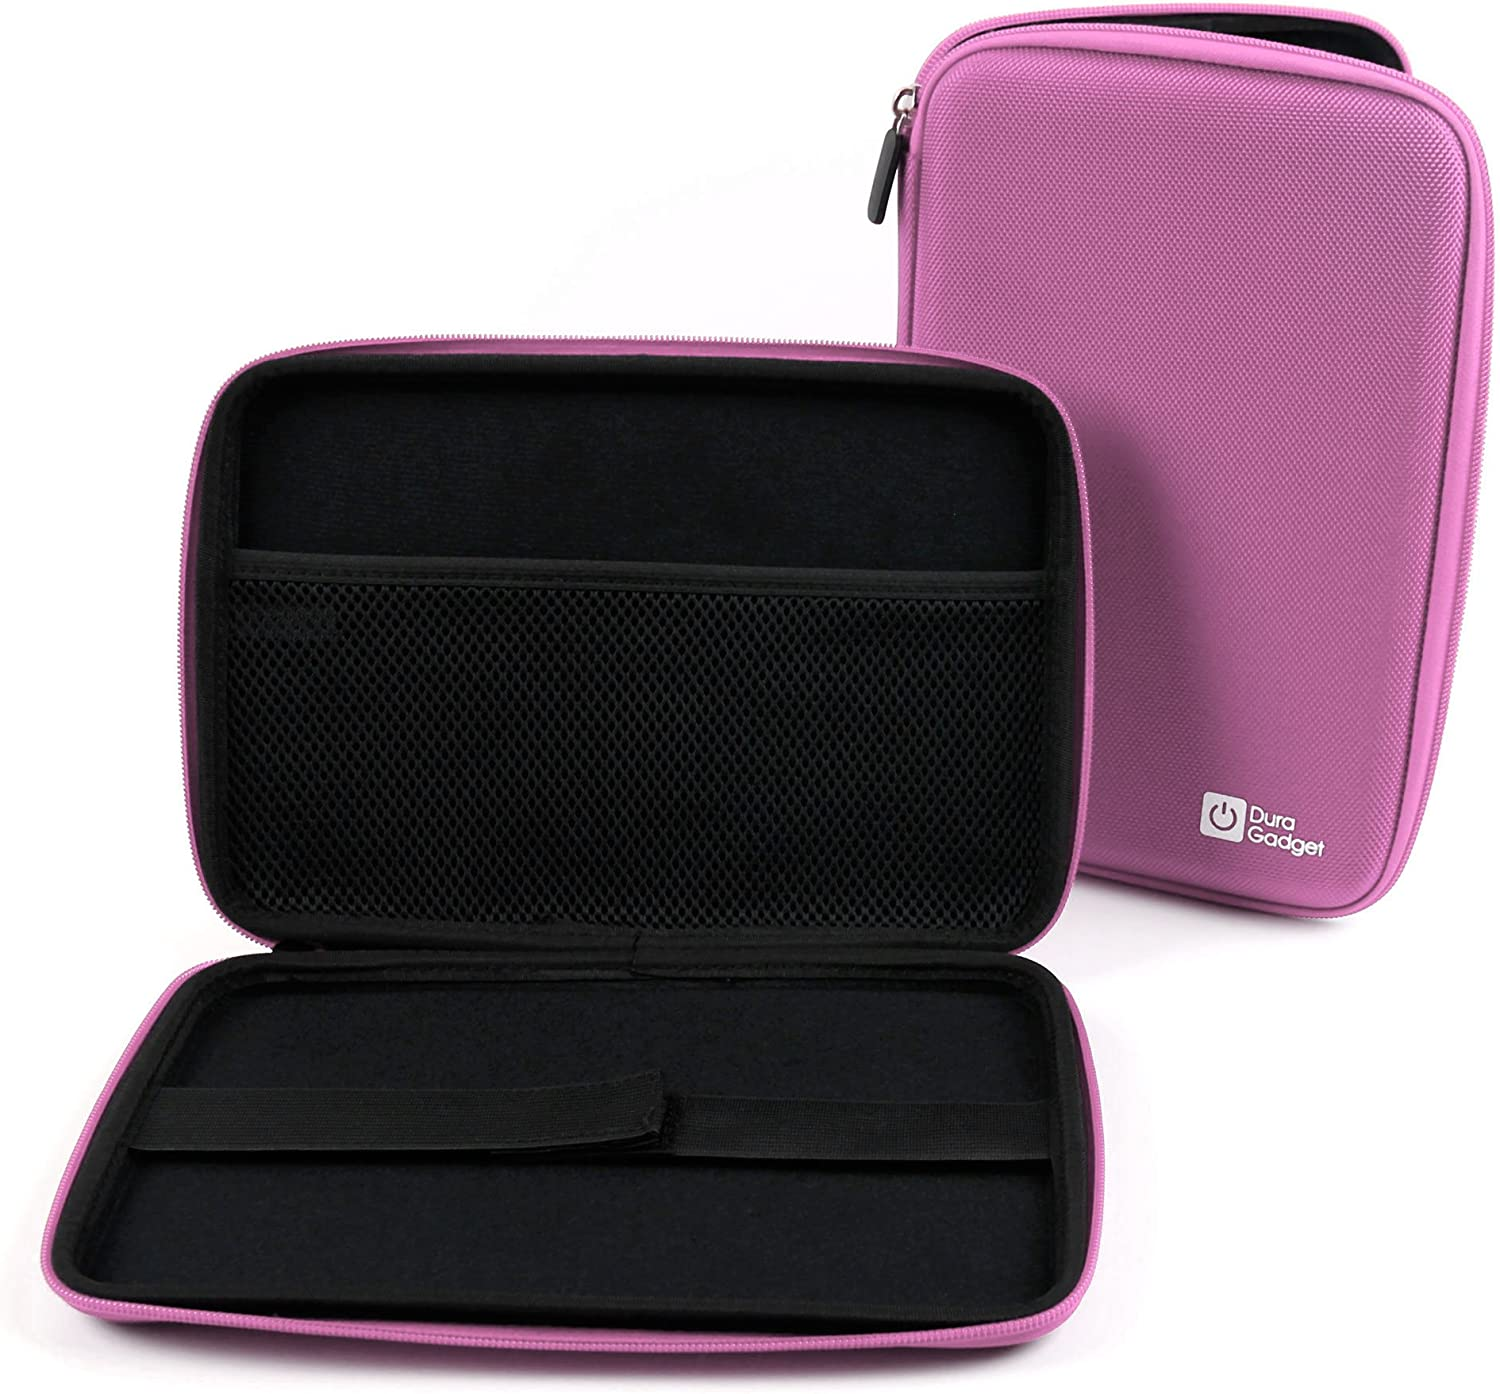 DURAGADGET Pink Rigid Protective Zip Armoured Case with Soft Inner Lining & Netted Pocket for Dell Venue 8, TabletExpress Allwinner A20 & DMG T909 Tablets